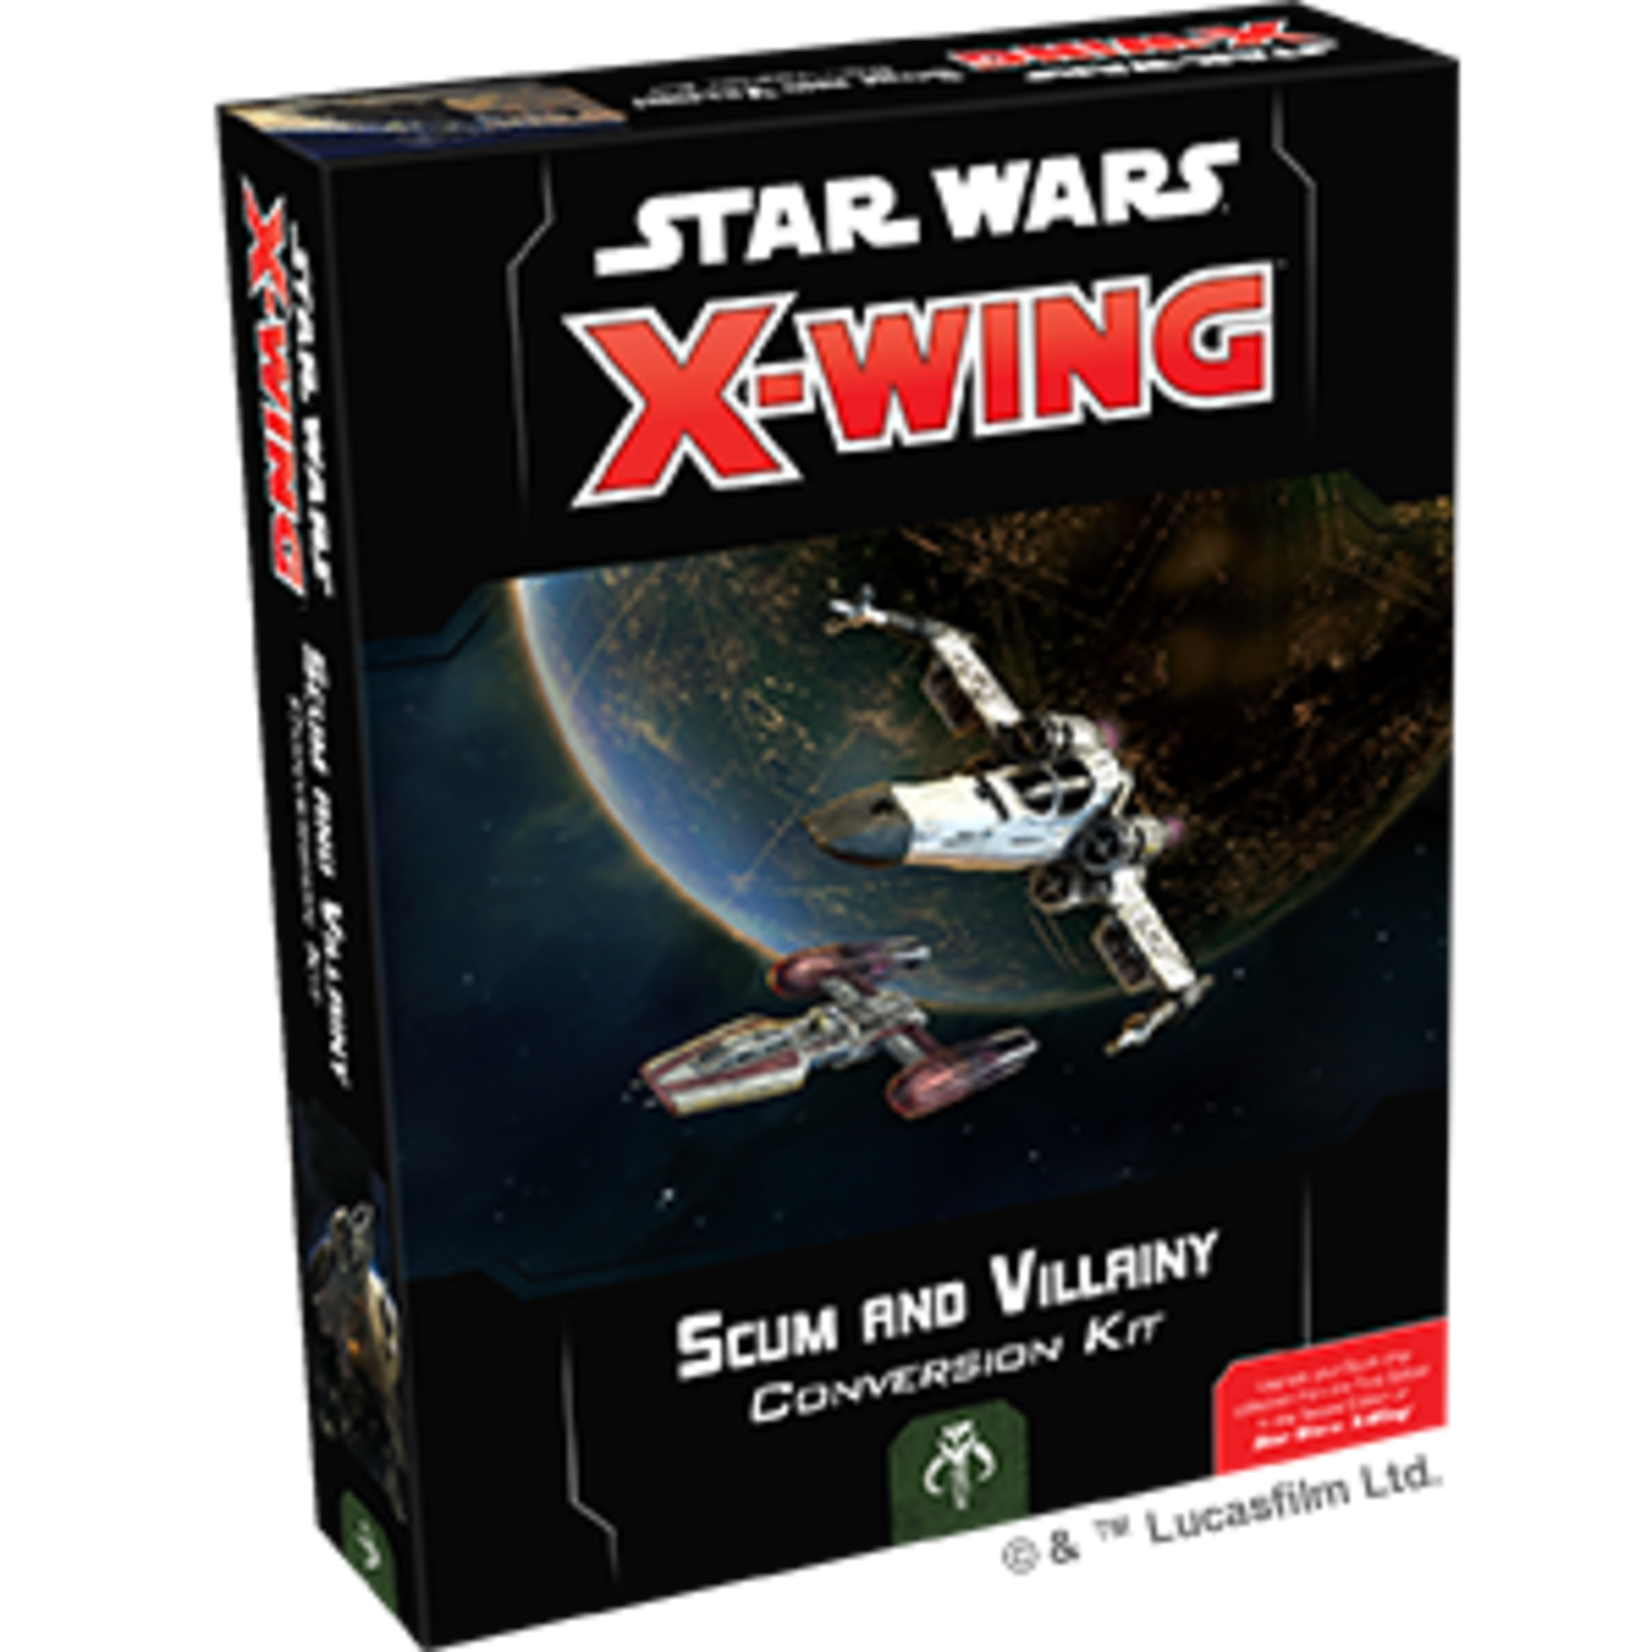 Fantasy Flight Games Star Wars X-Wing 2nd Edition: Scum Conversion Expansion Kit